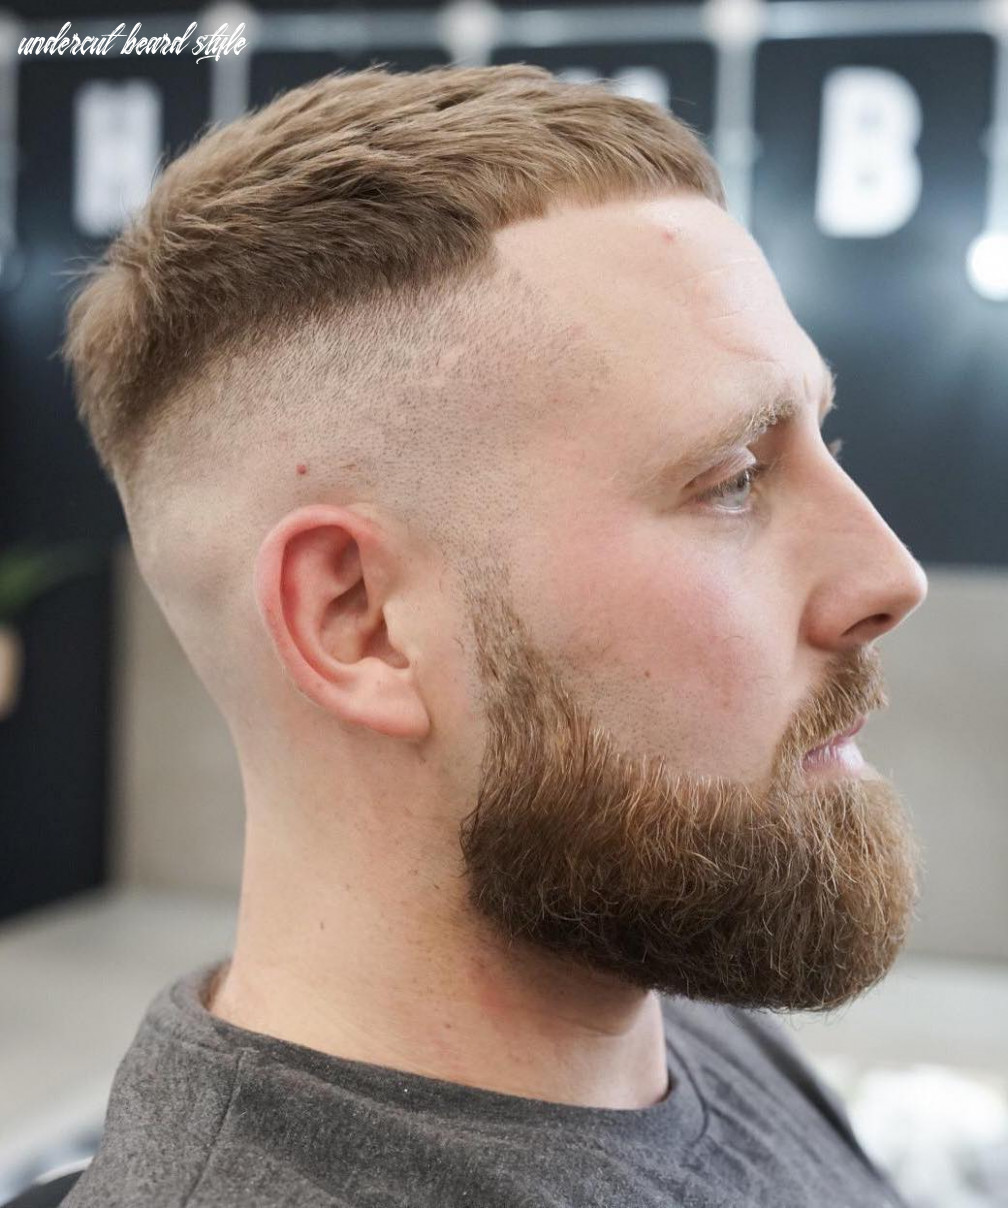 Top 10 hairstyles for men with beards undercut beard style